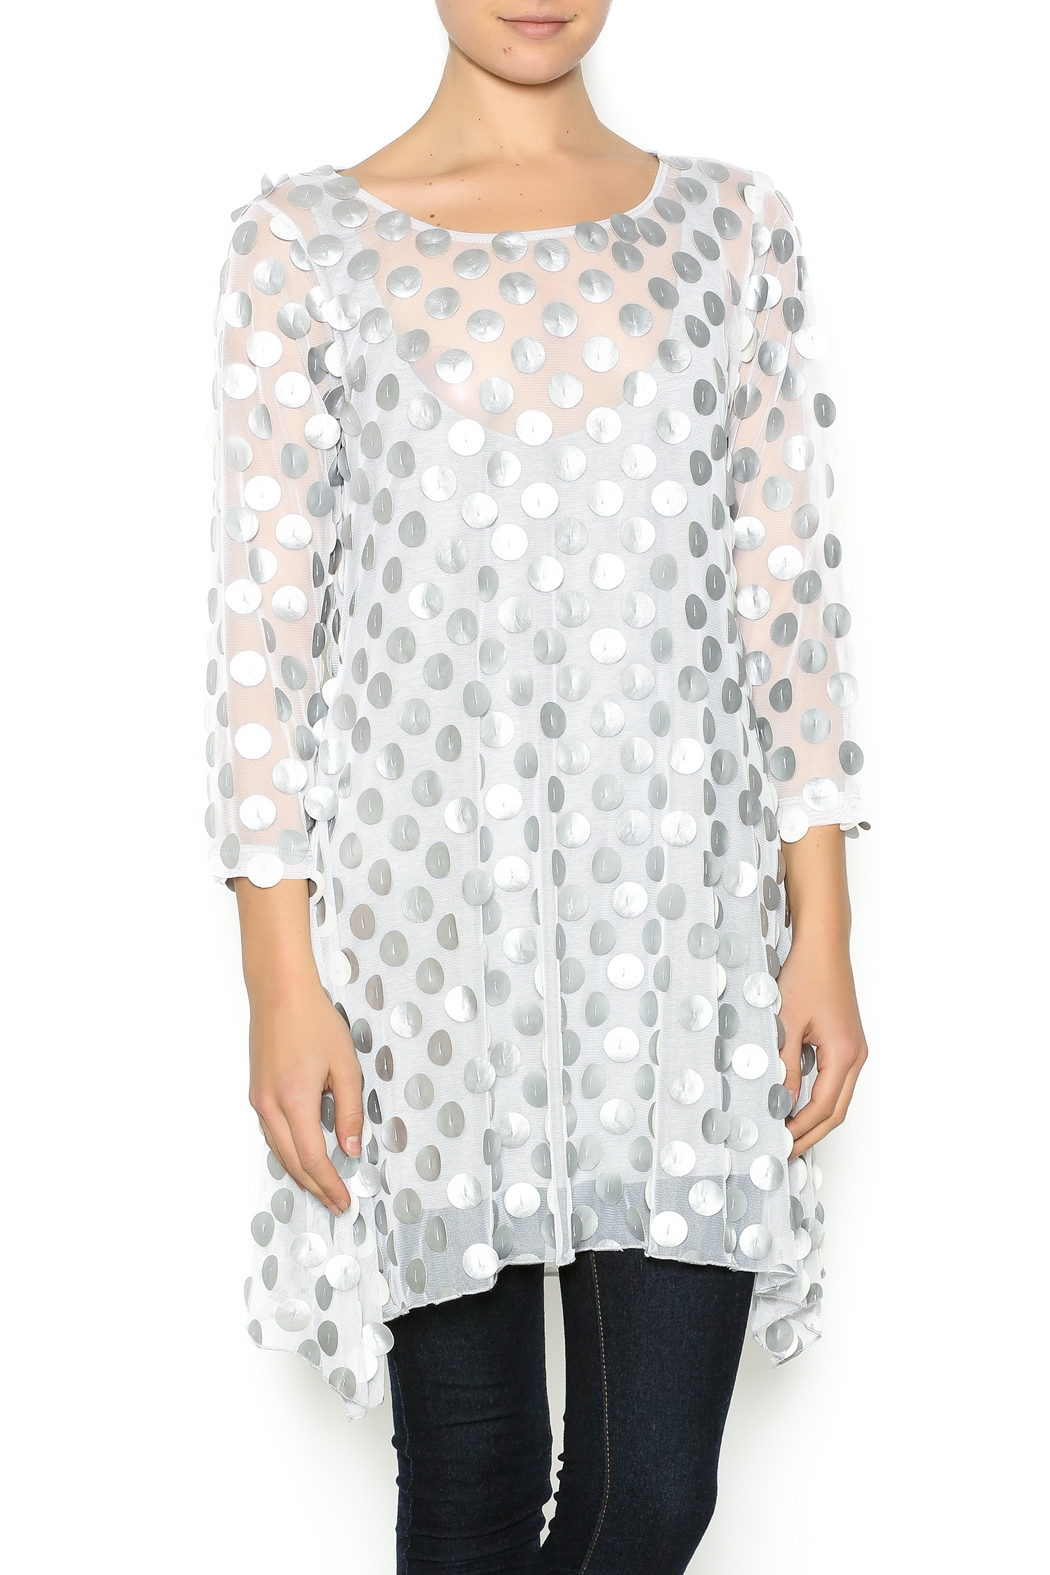 Staples Silver and White Mod Tunic - Main Image